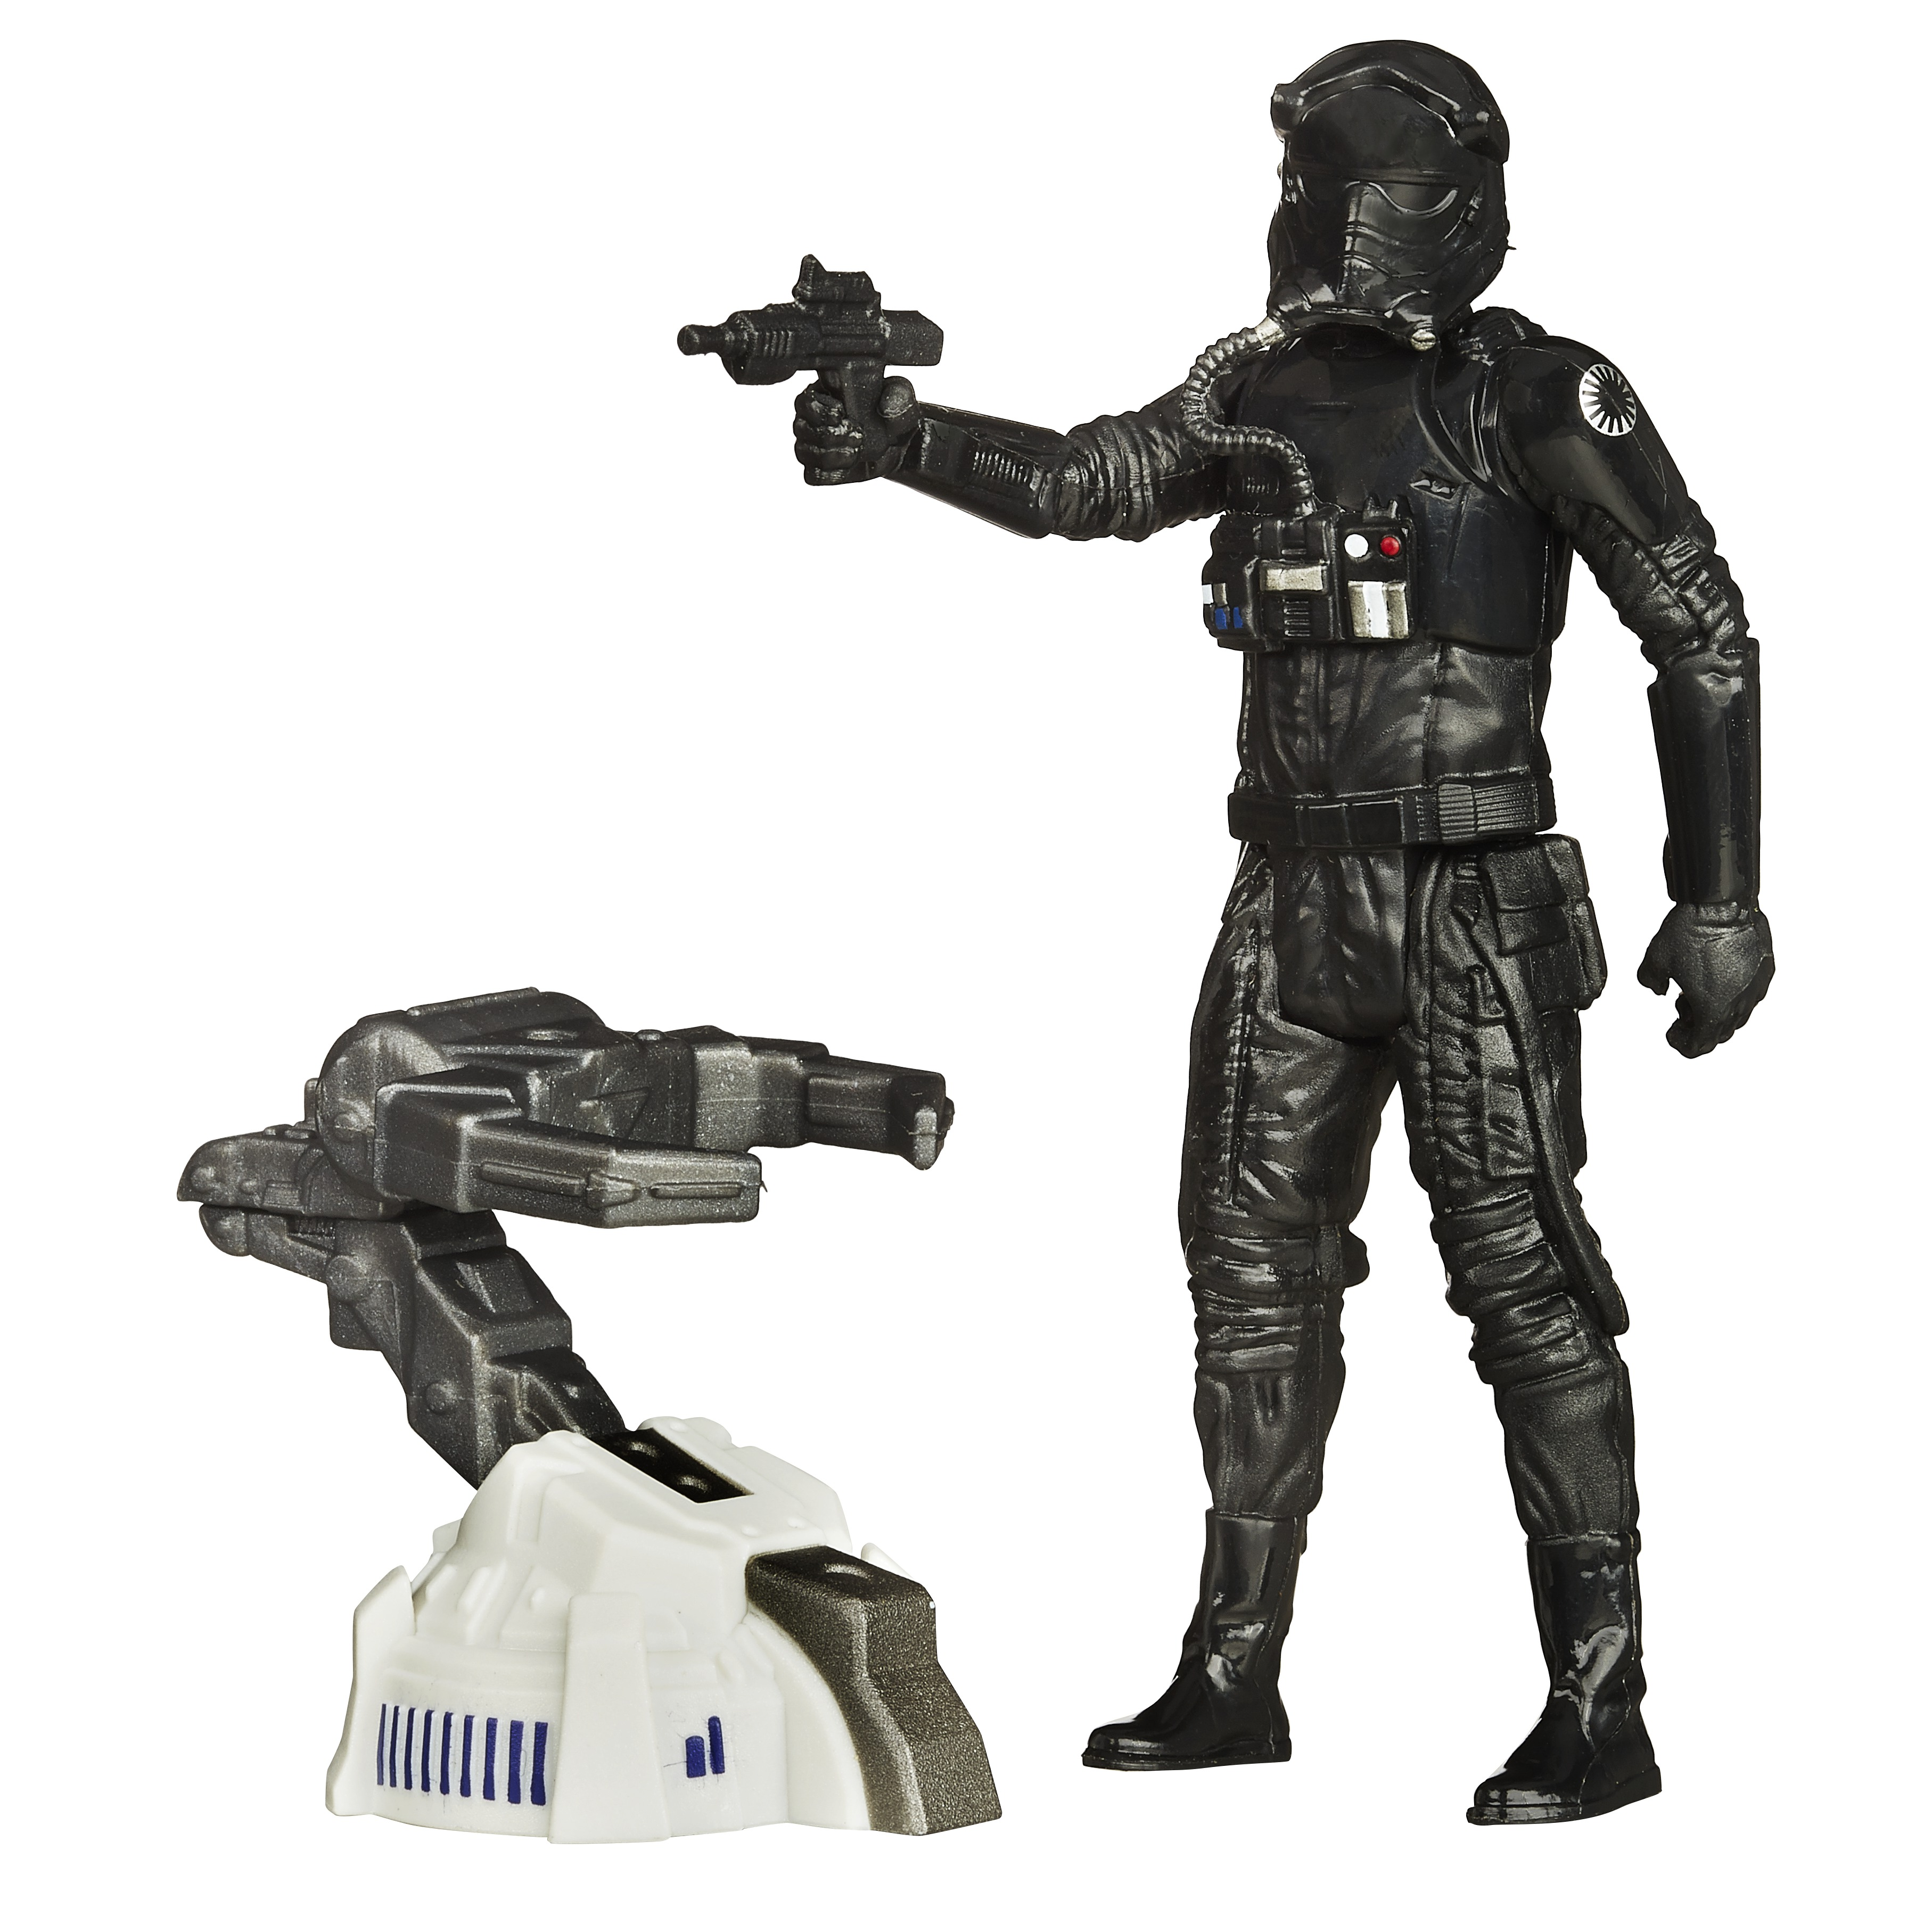 <b>Star Wars <i>The Force Awakens</i> Build a Weapon</b>; Tie Fighter Pilot